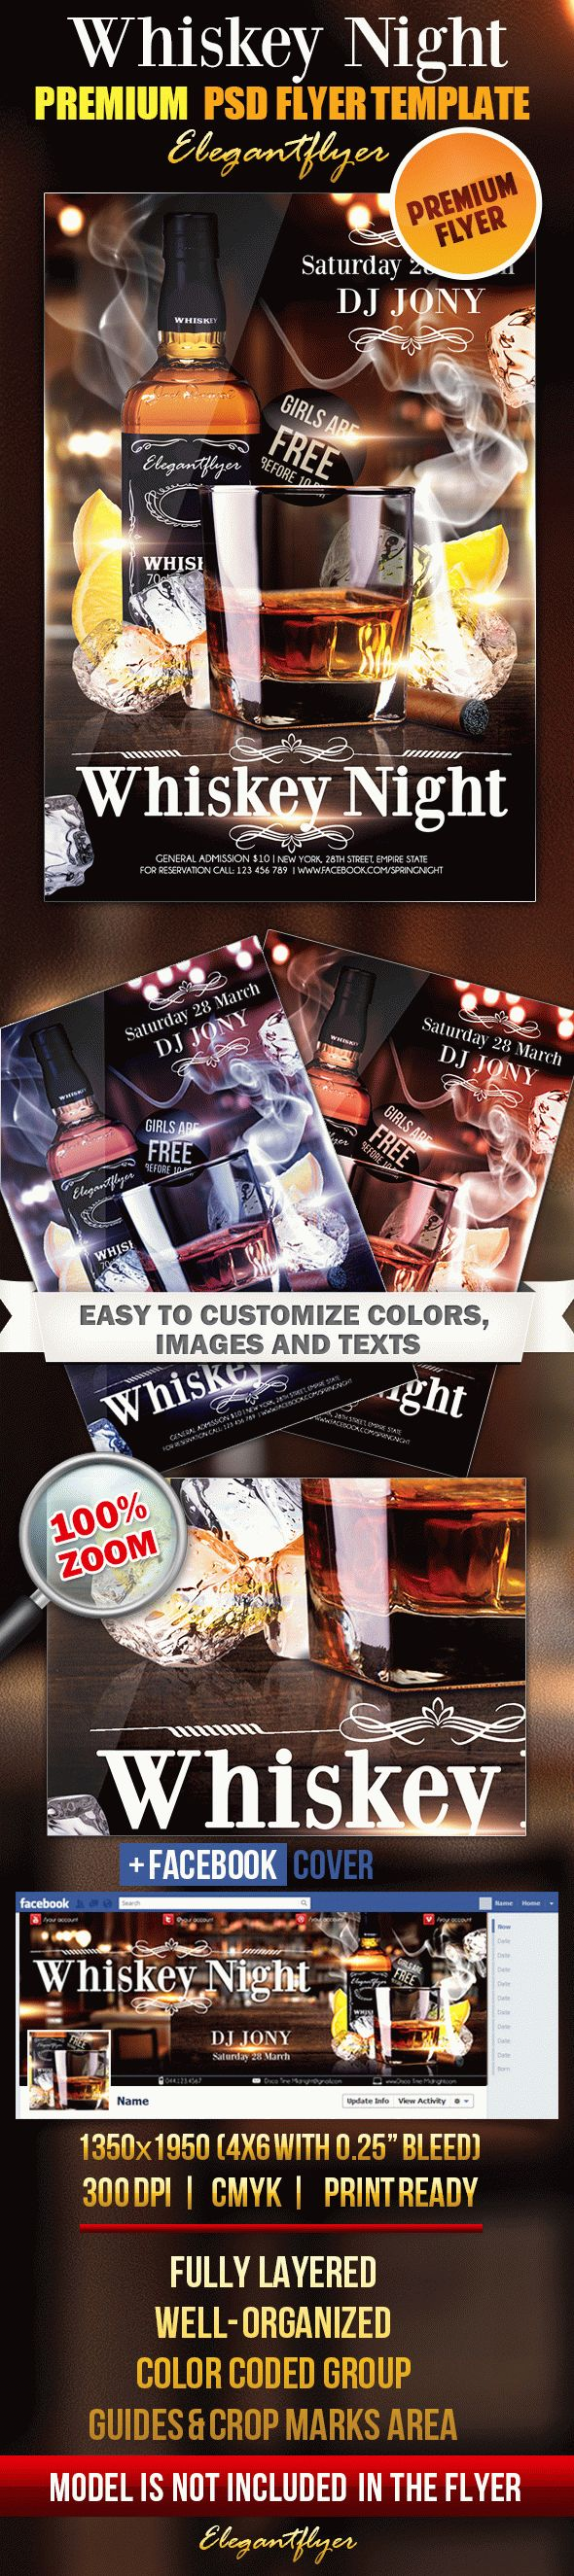 Whiskey Night Flyer PSD Template